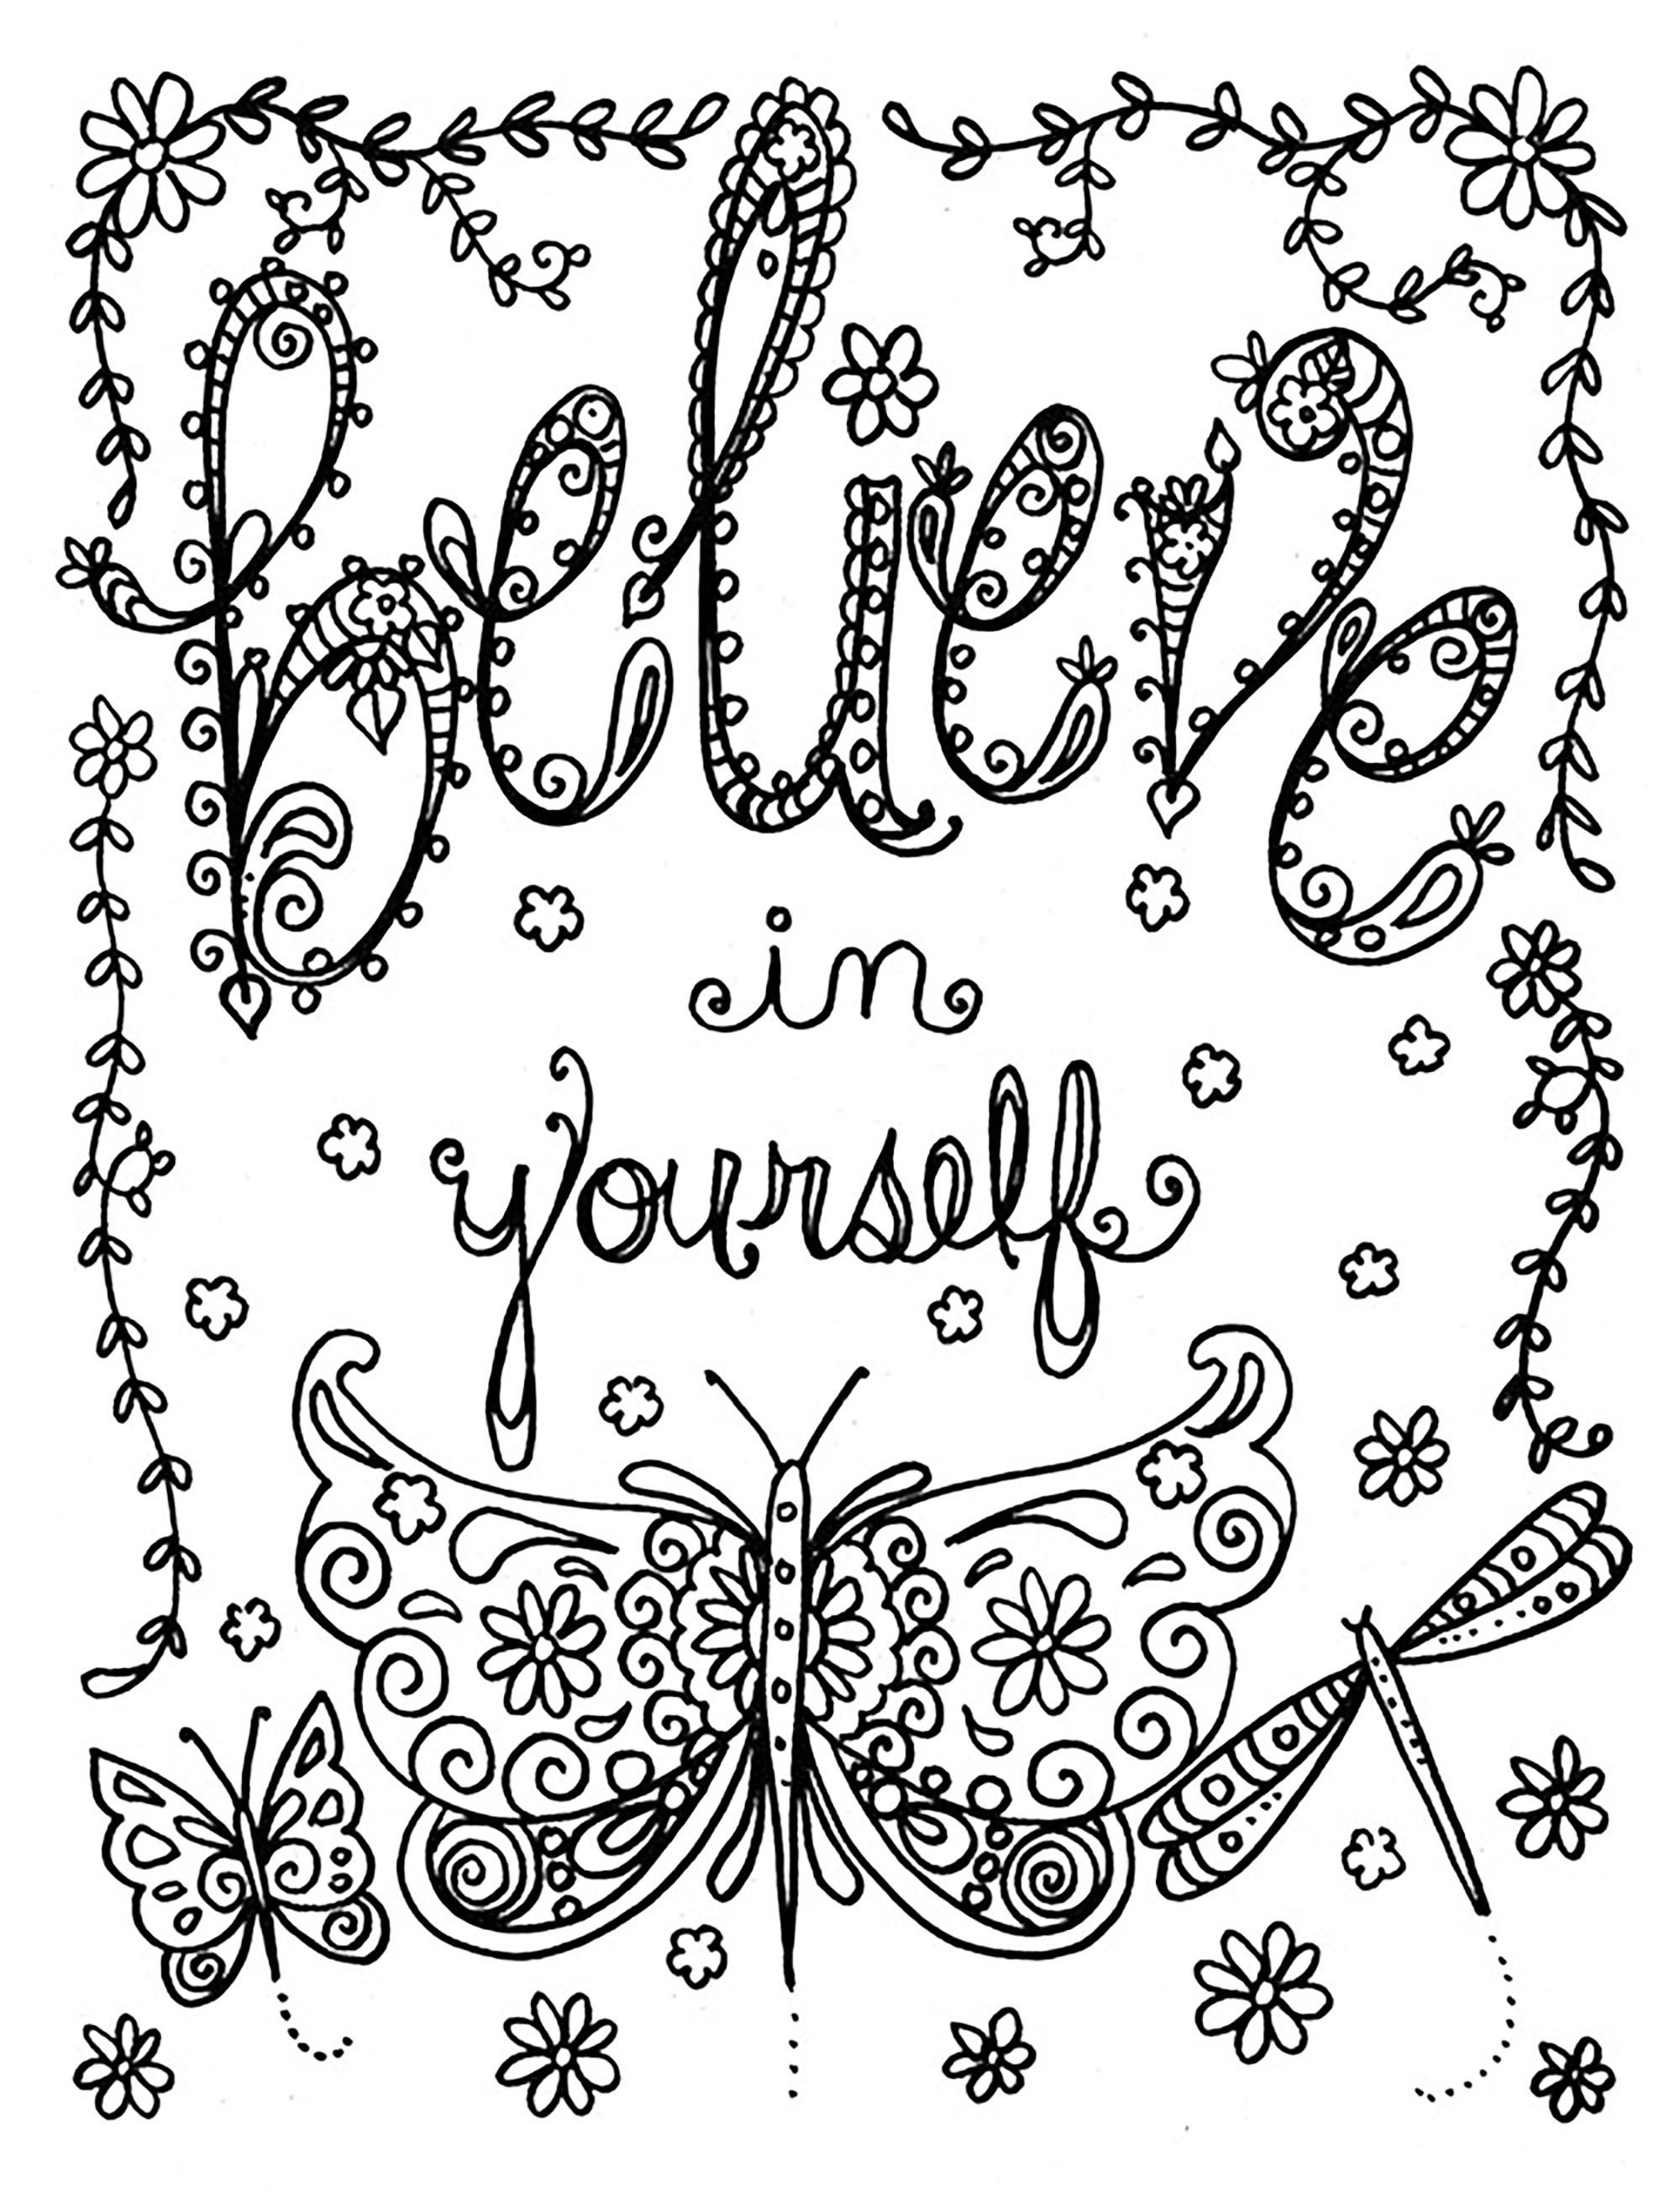 Be Brave Adult Coloring Book To Relieve Stress And Create Self Worth Deborah